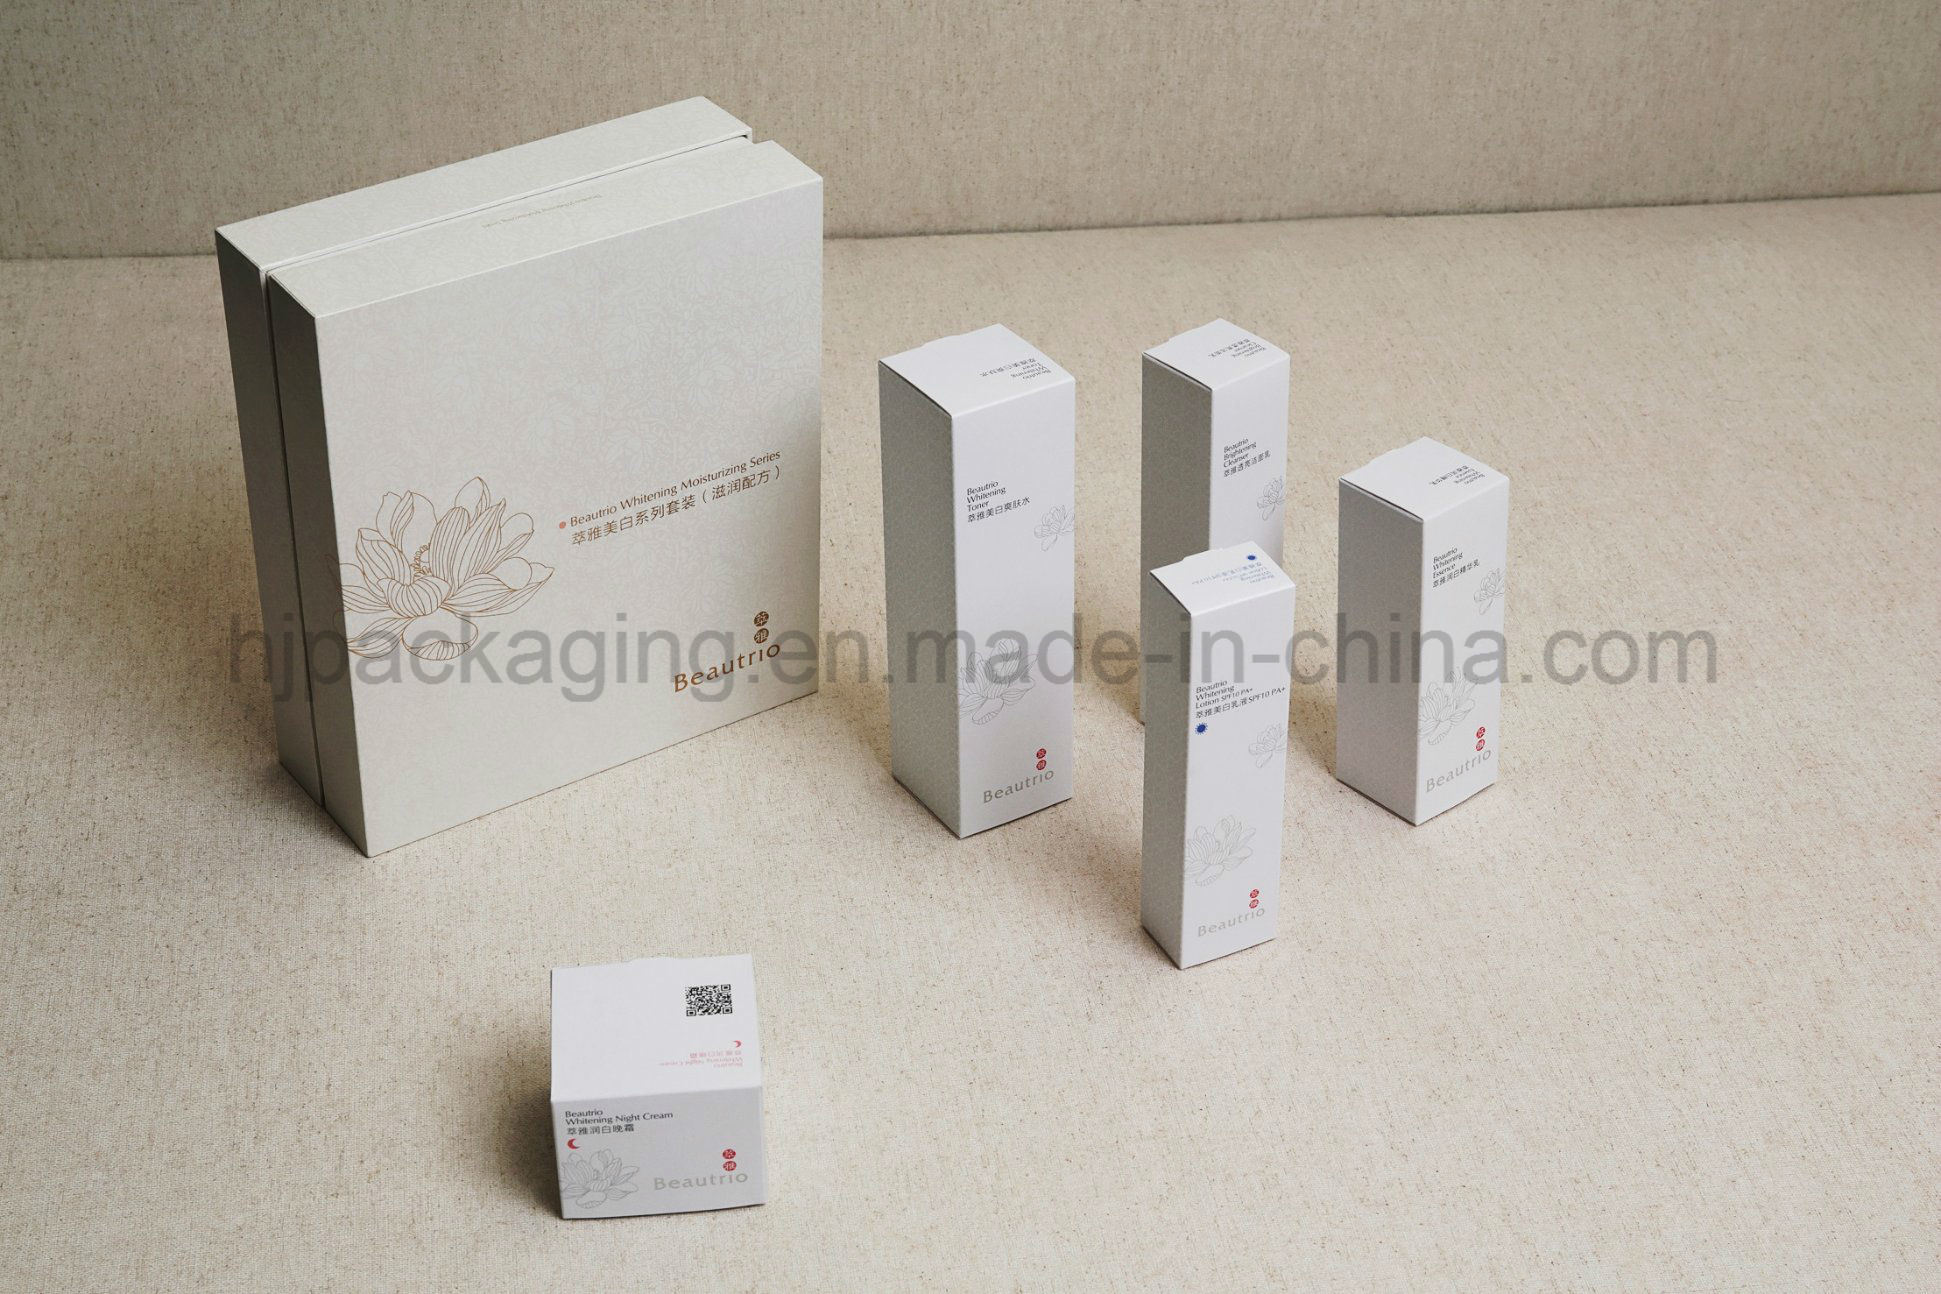 China Free Samples Hair Extension Packaging Box Photos Pictures